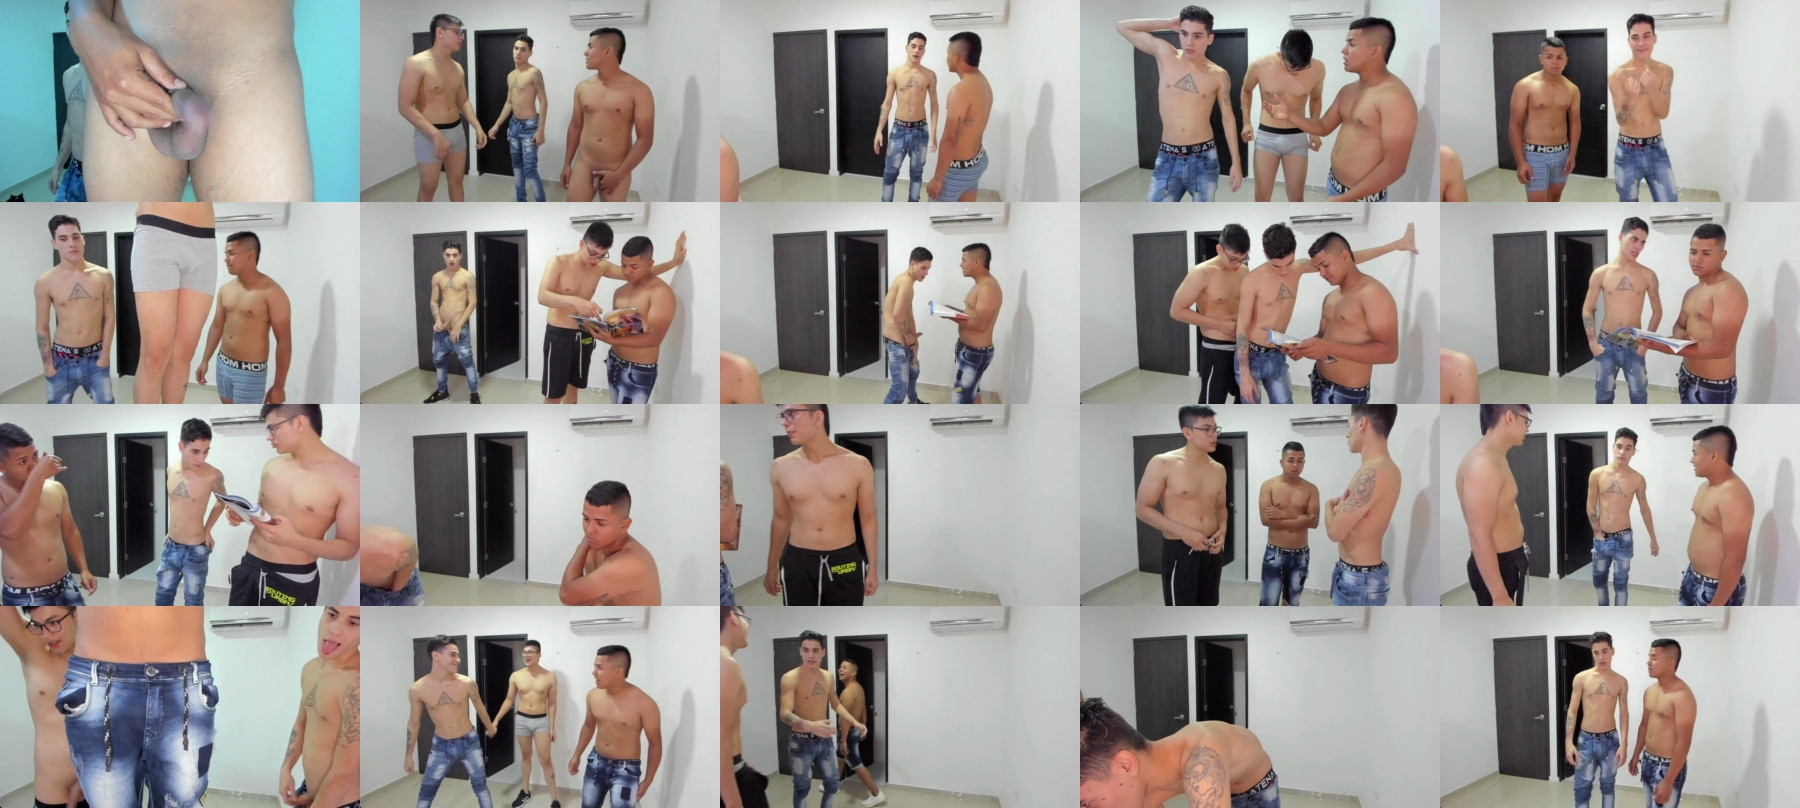 Badguys_Sex Naked CAM SHOW @ Chaturbate 05-05-2021